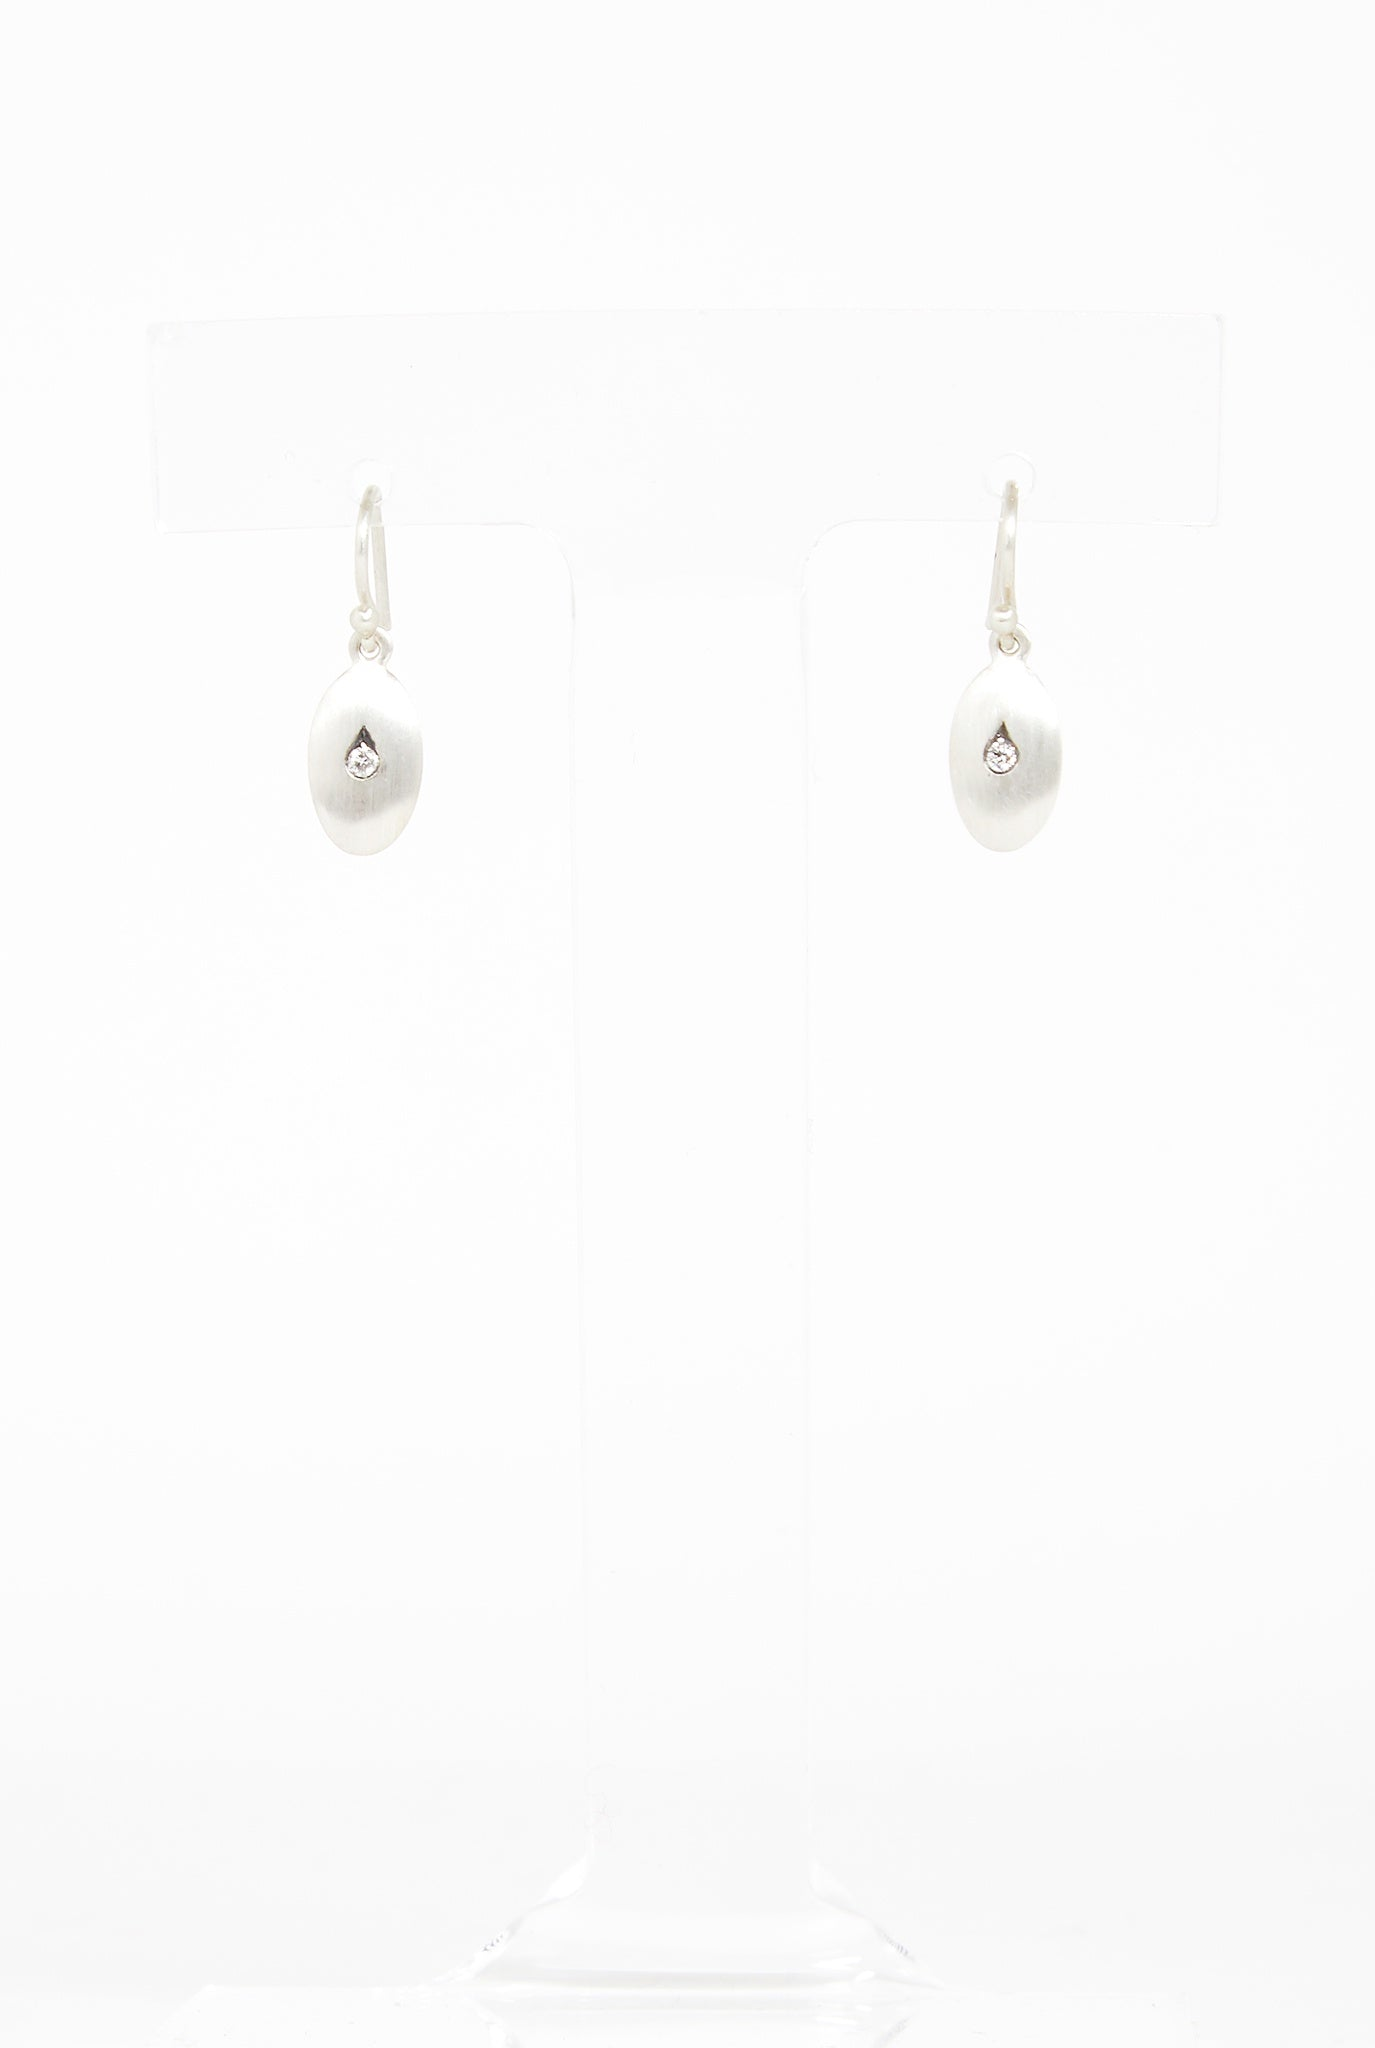 DAN-YELL Baran Silver Earrings